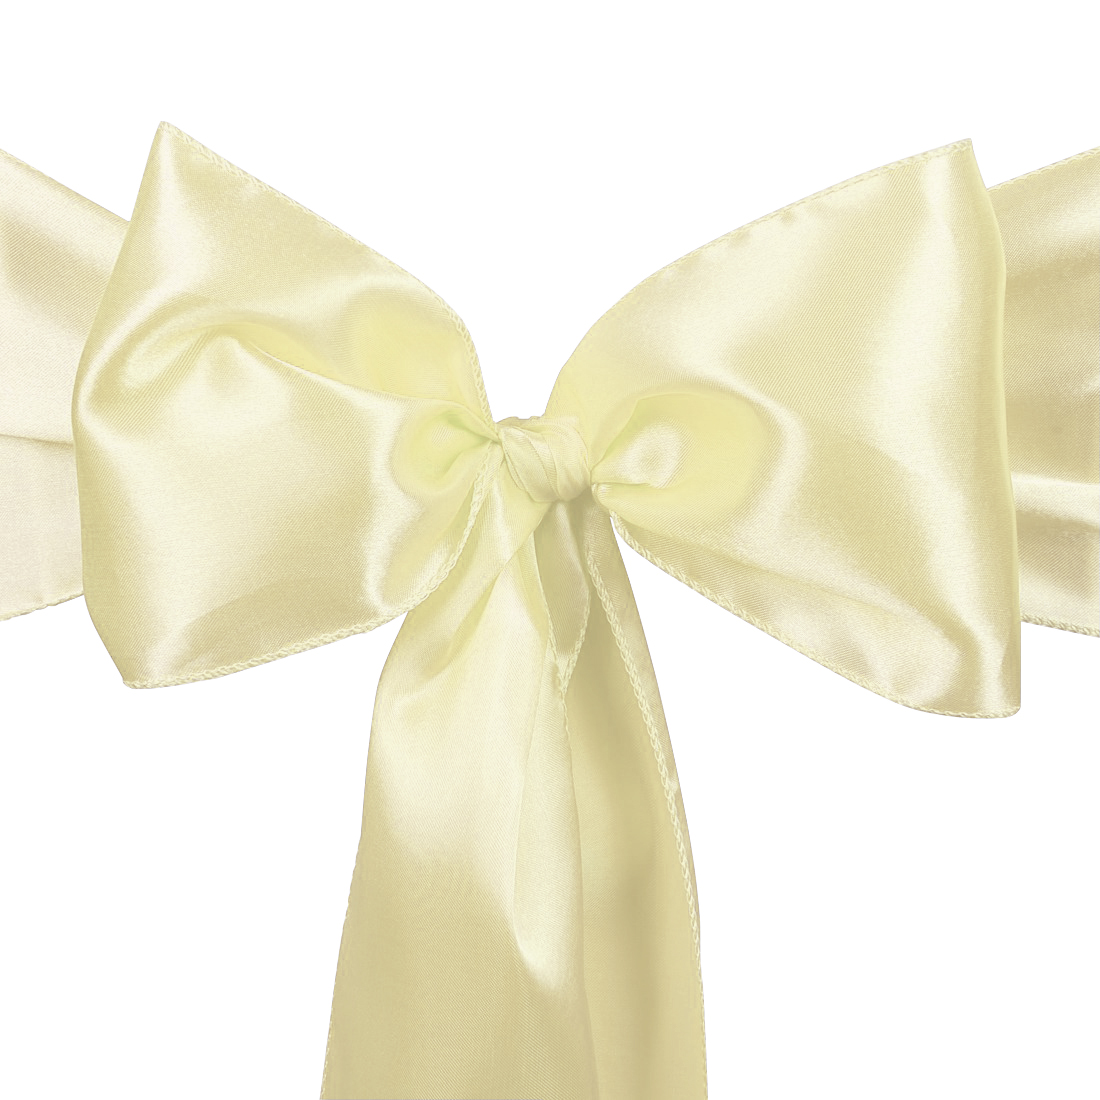 chair covers and sashes for sale lifts stairs canada 1 10 50 100 satin cover sash bows wedding banquet